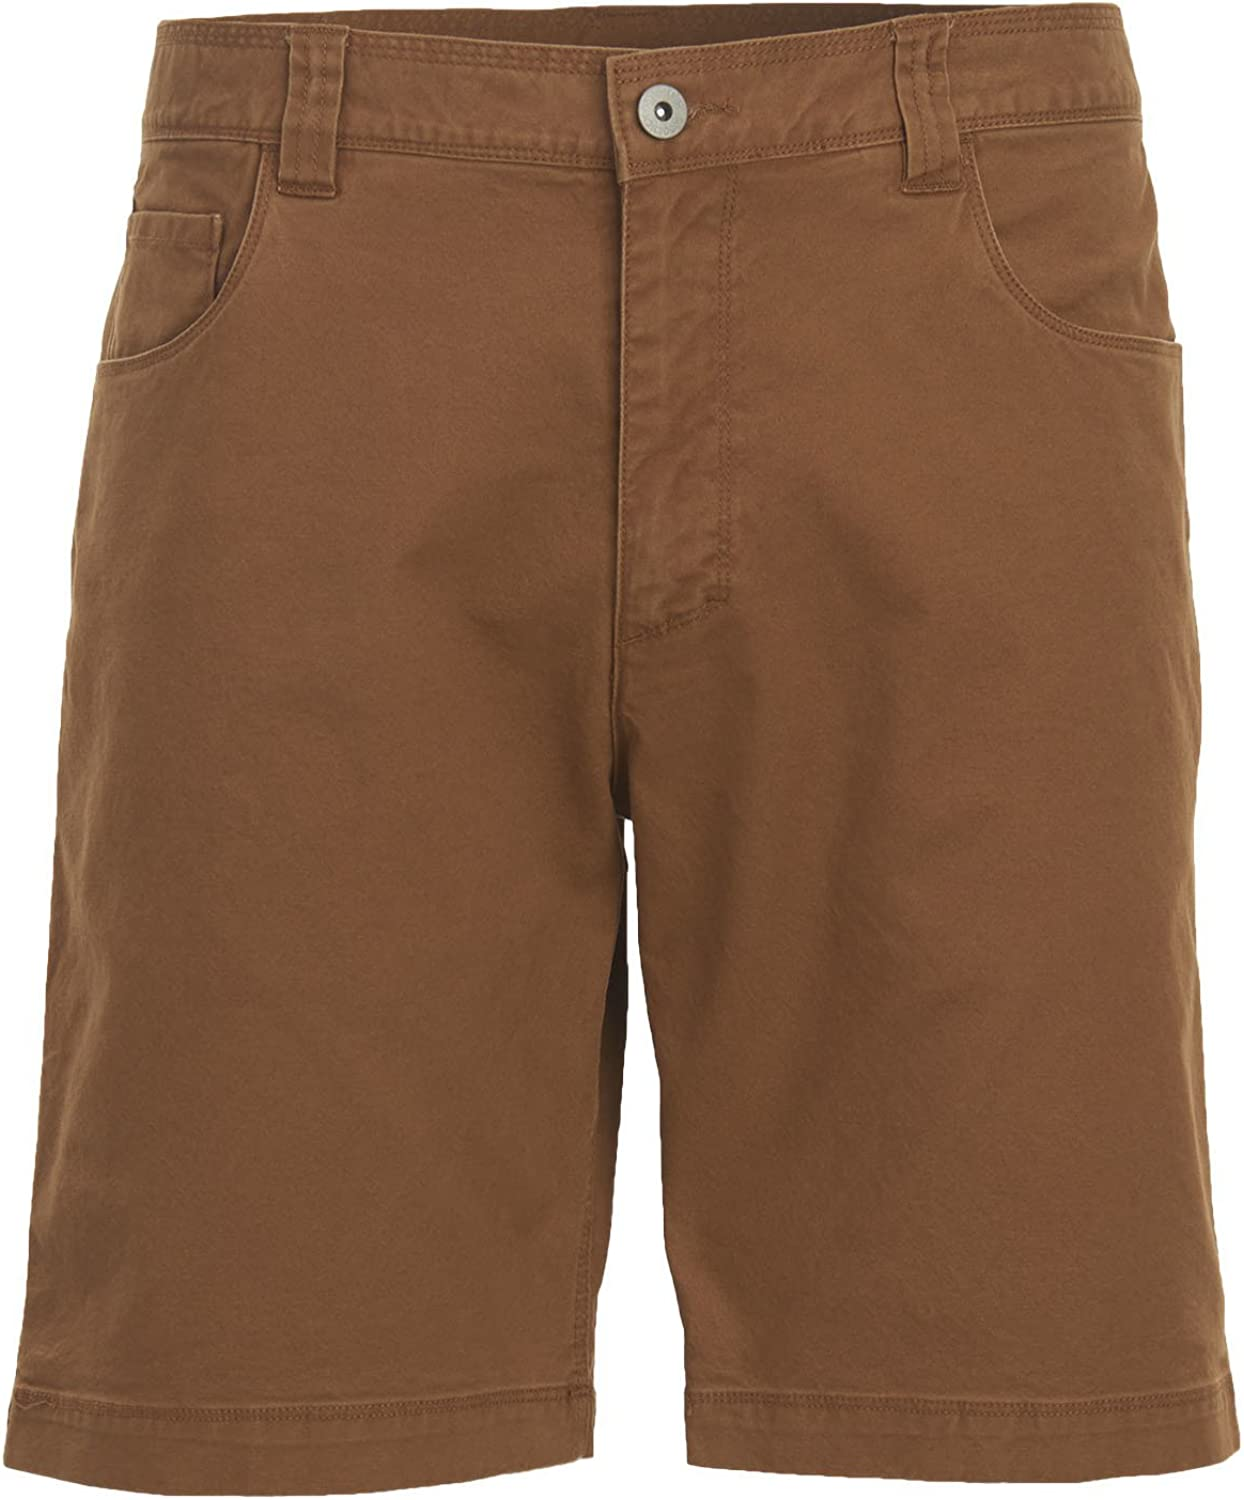 Woolrich Men's Nomad Midweight Canvas Modern Fit Short